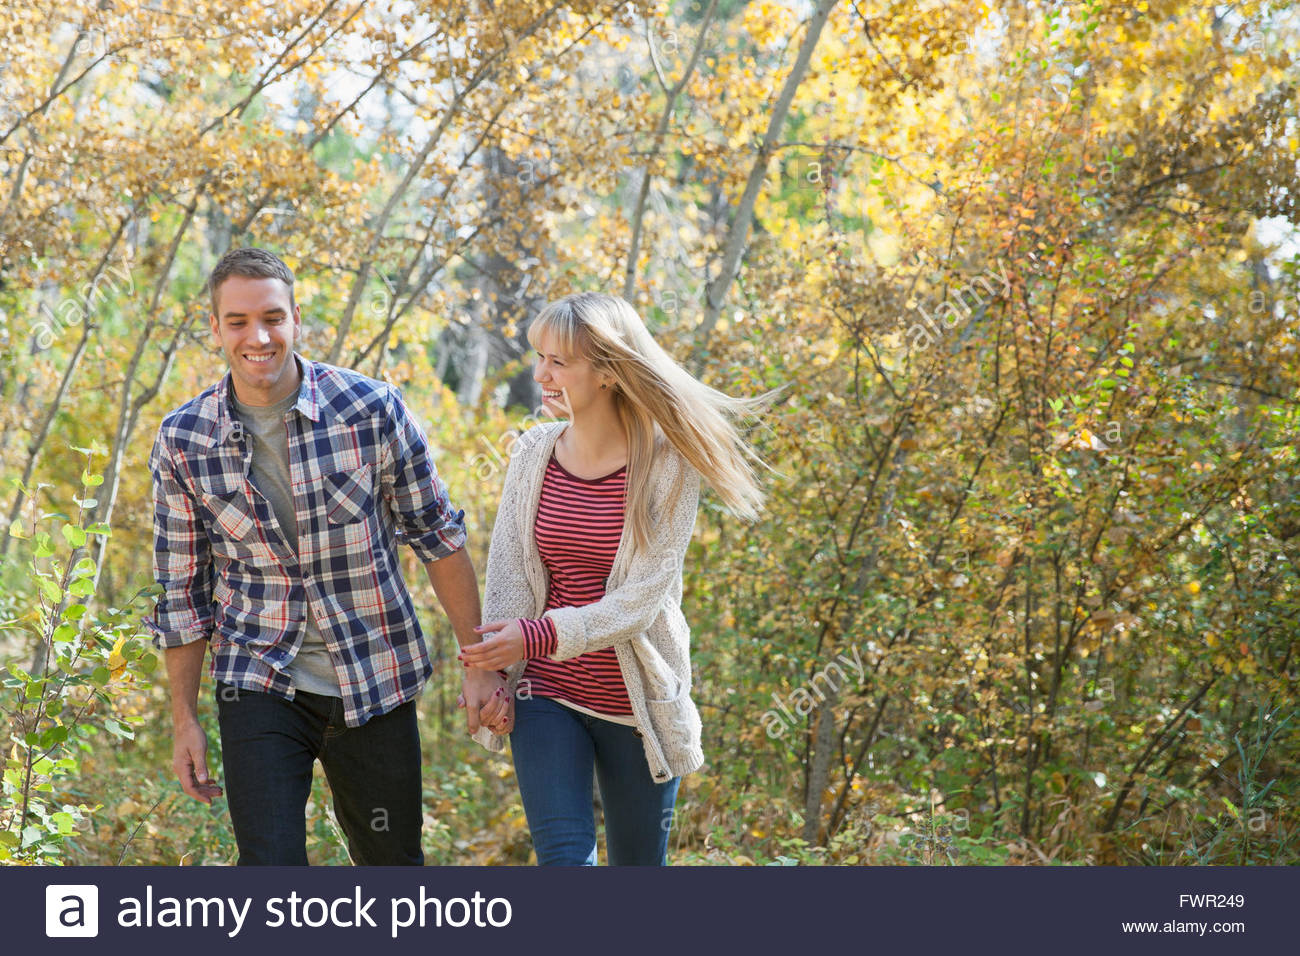 Happy young couple walking in park - Stock Image